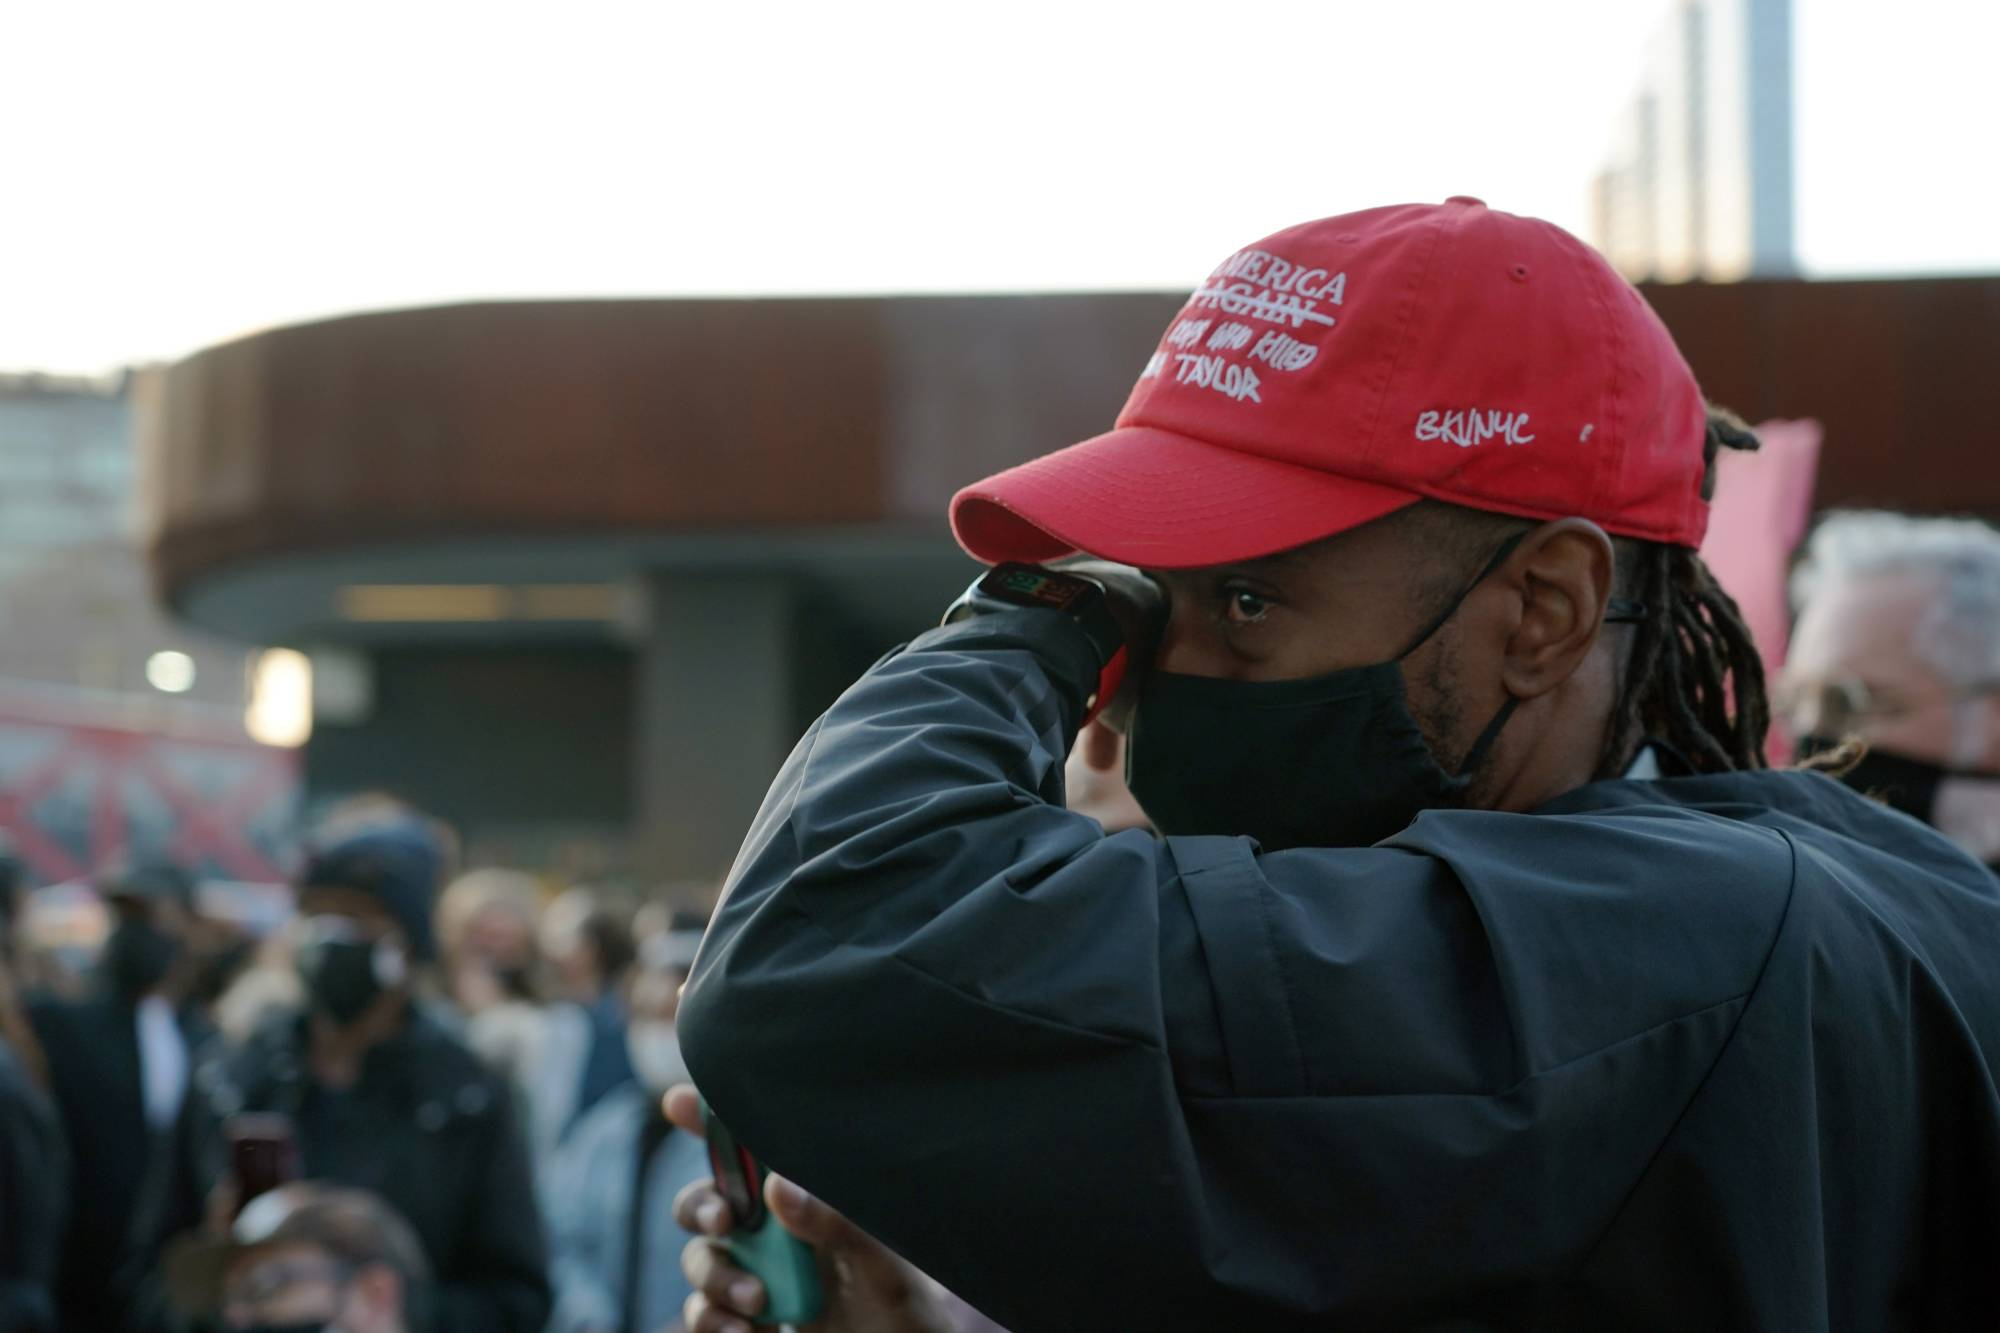 People gather outside the Barclays Center in Brooklyn, New York, on Tuesday to celebrate the guilty verdict in the George Floyd case. | MICHELLE V. AGINS / THE NEW YORK TIMES